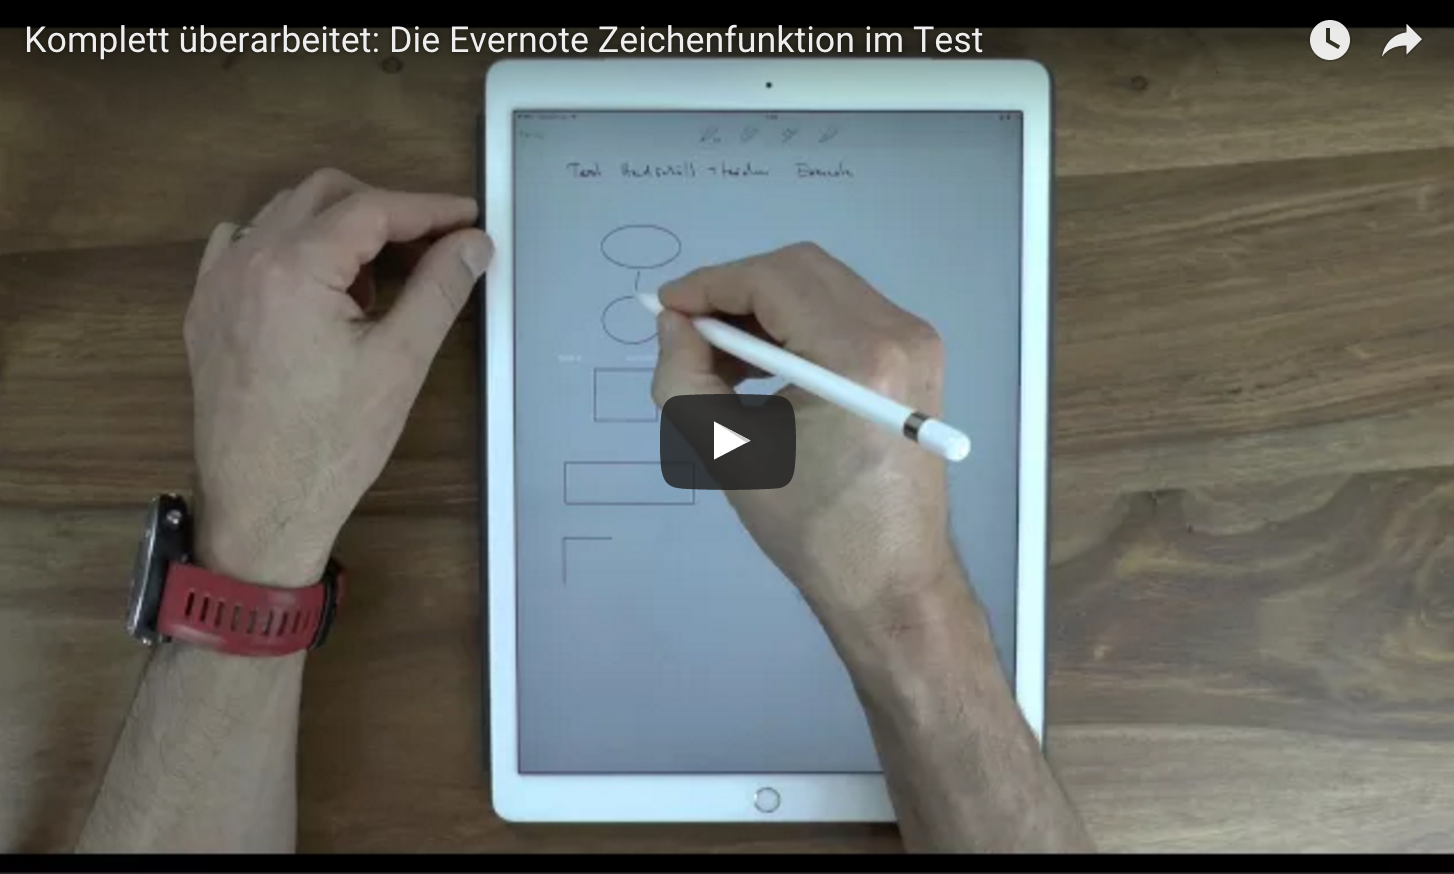 iPAd Pro mit Apple Pencil in Evernote nutzen